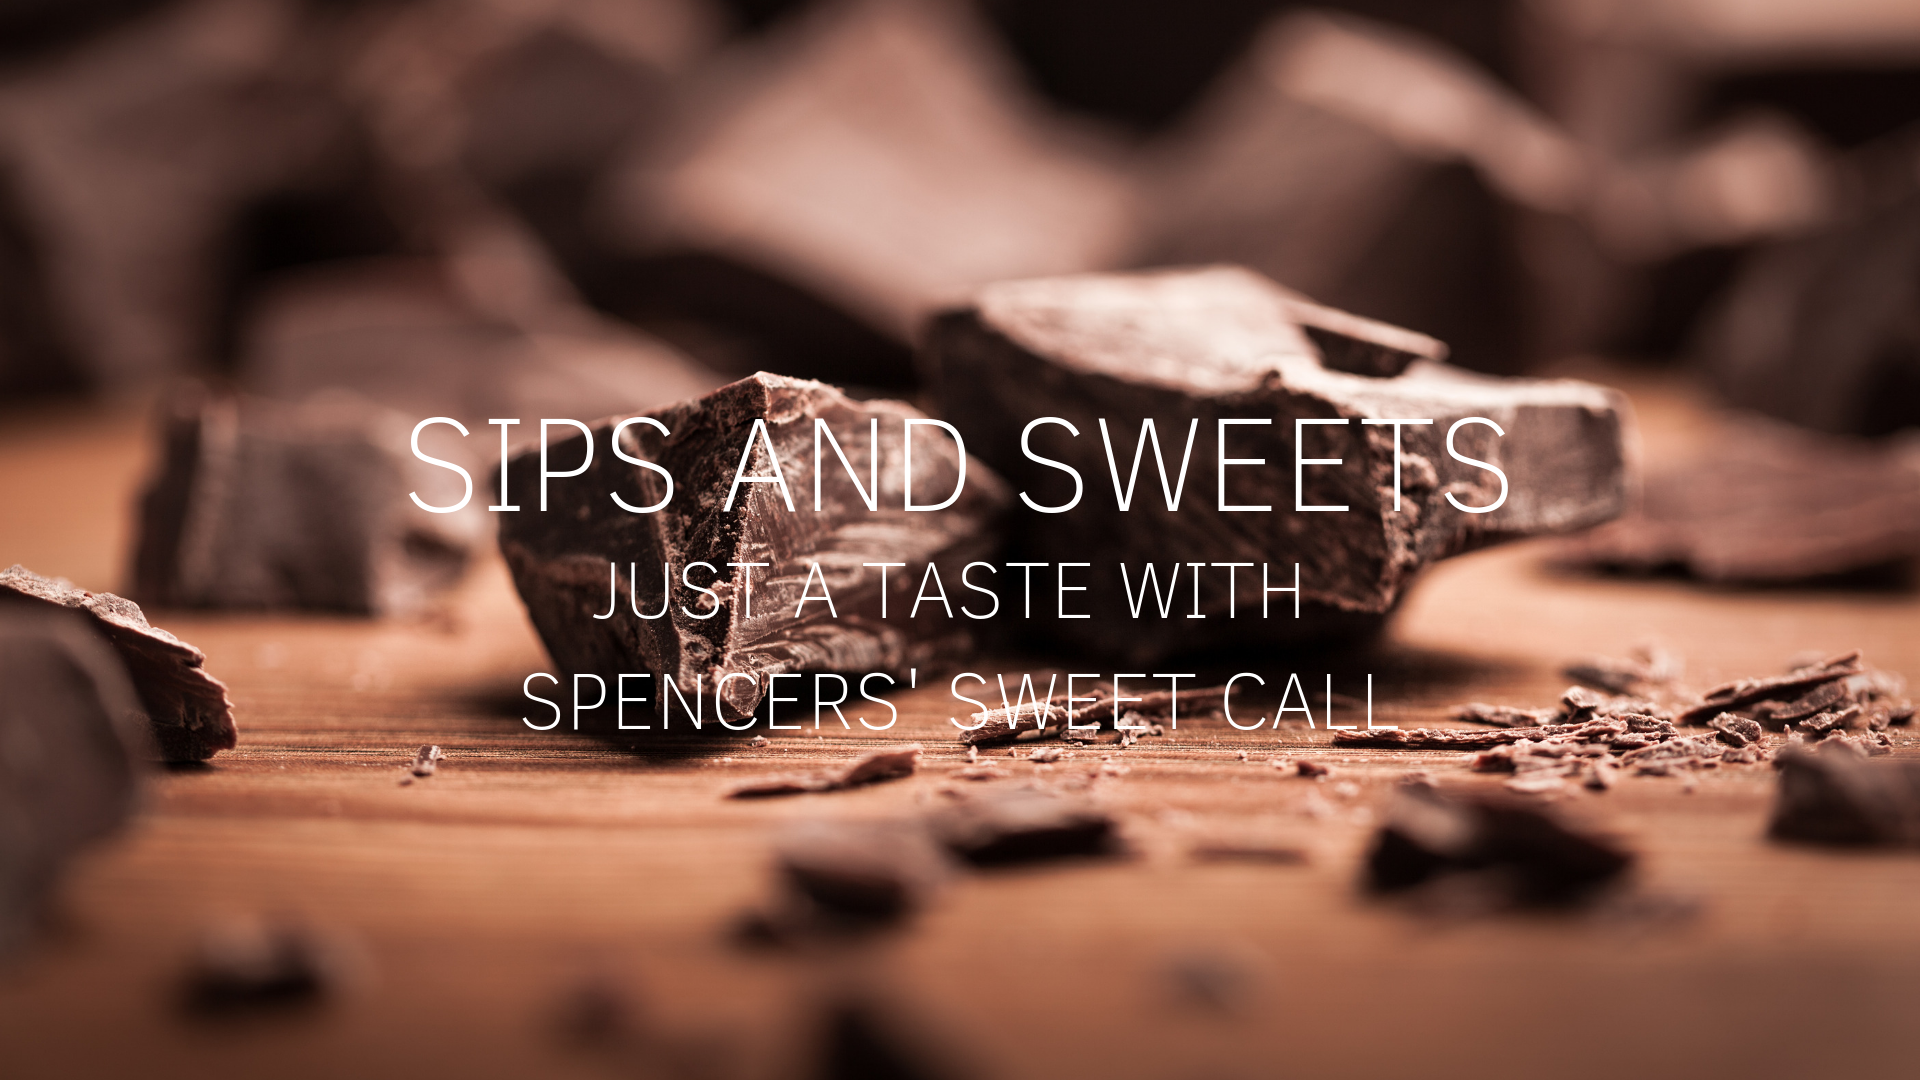 If you have a sweet tooth then this is the wine paring event for you! We're partnering with Spencers' Sweet Call in Webb City to bring you some incredible and unexpected wine and sweet treat pairings!